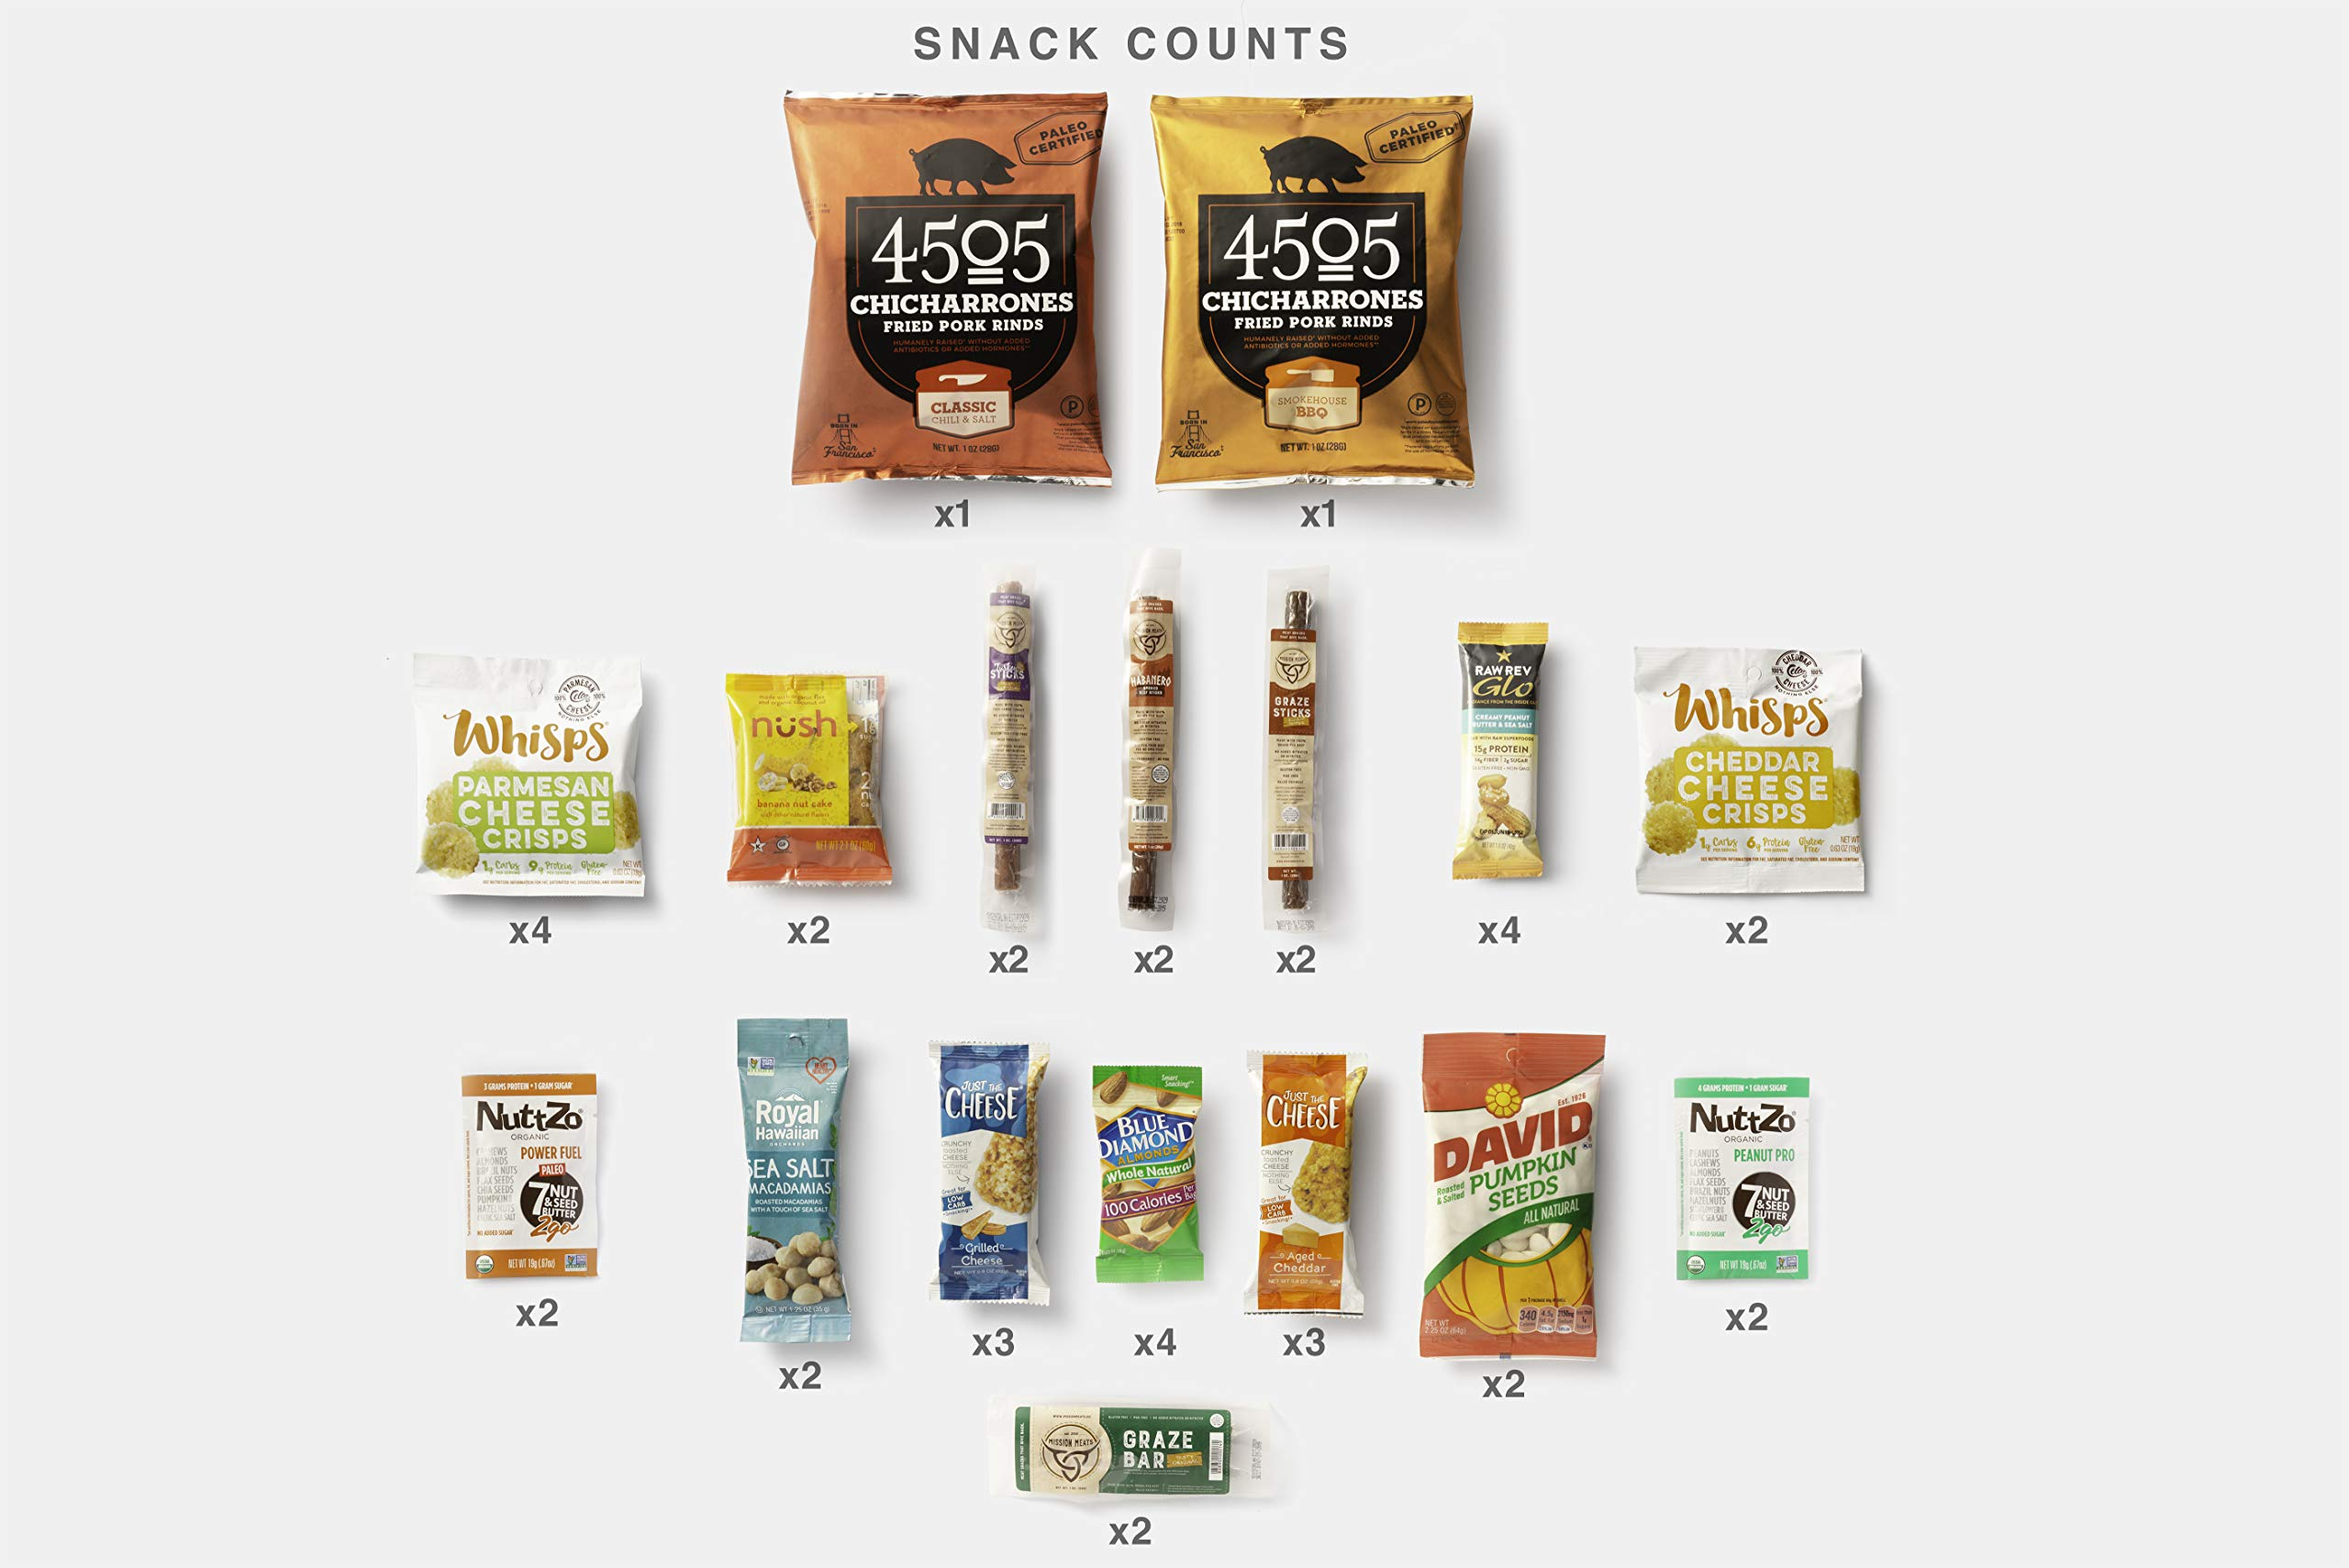 Keto Snack Box (40 Count)-Ultra Low Carb Snacks-Ketogenic Friendly, Gluten Free, Low Sugar Healthy Keto Gift Box Variety Pack - Protein Bars, Pork Rinds, Cheese Crisps, Nut, Jerky, and More by Cedar Mountain Trade Co. (Image #6)